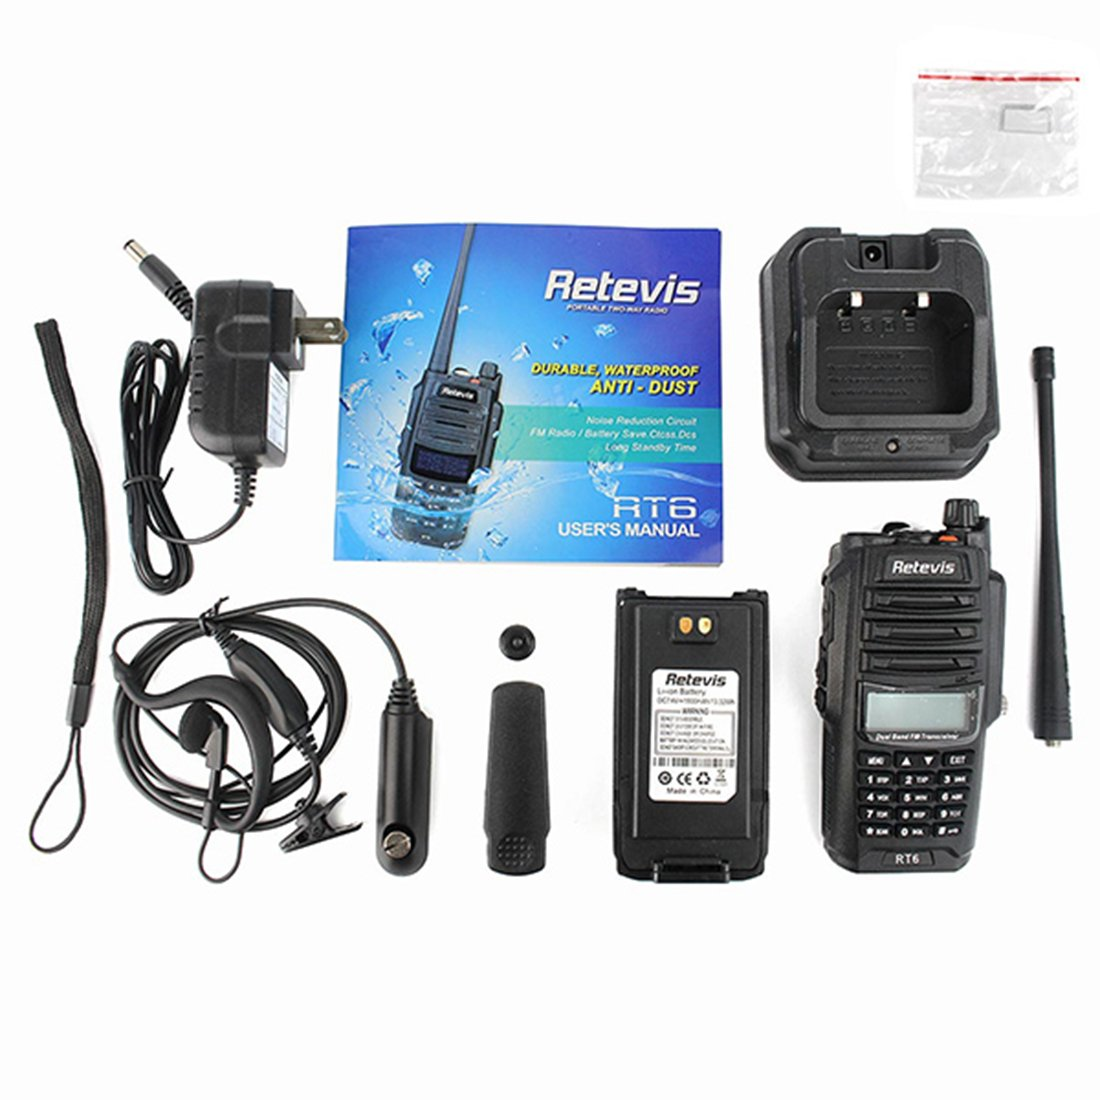 Retevis RT6 2 Way Radio IP67 Waterproof Dual Band VHF/UHF 136-174Mhz/400-520Mhz Walkie Talkie with Earpiece (5 Pack) and Programming Cable (1 Pack) by Retevis (Image #7)